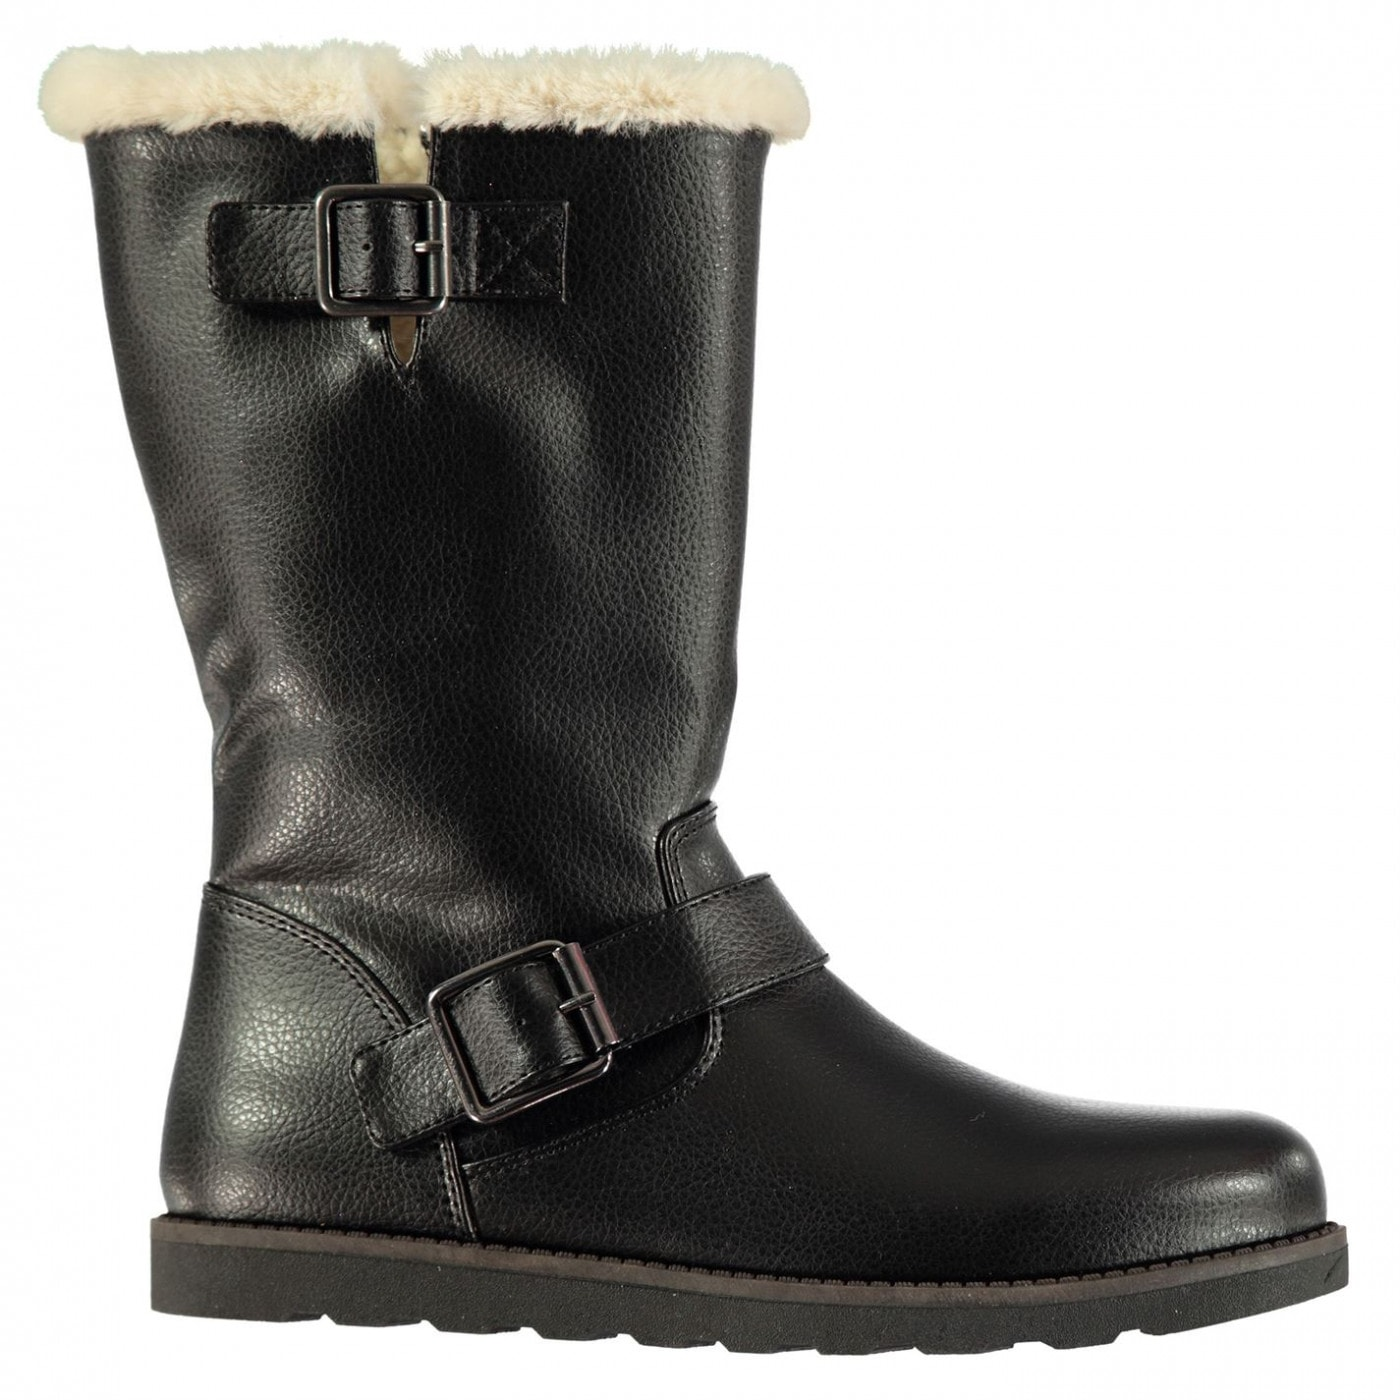 SoulCal Monti Boots Ladies